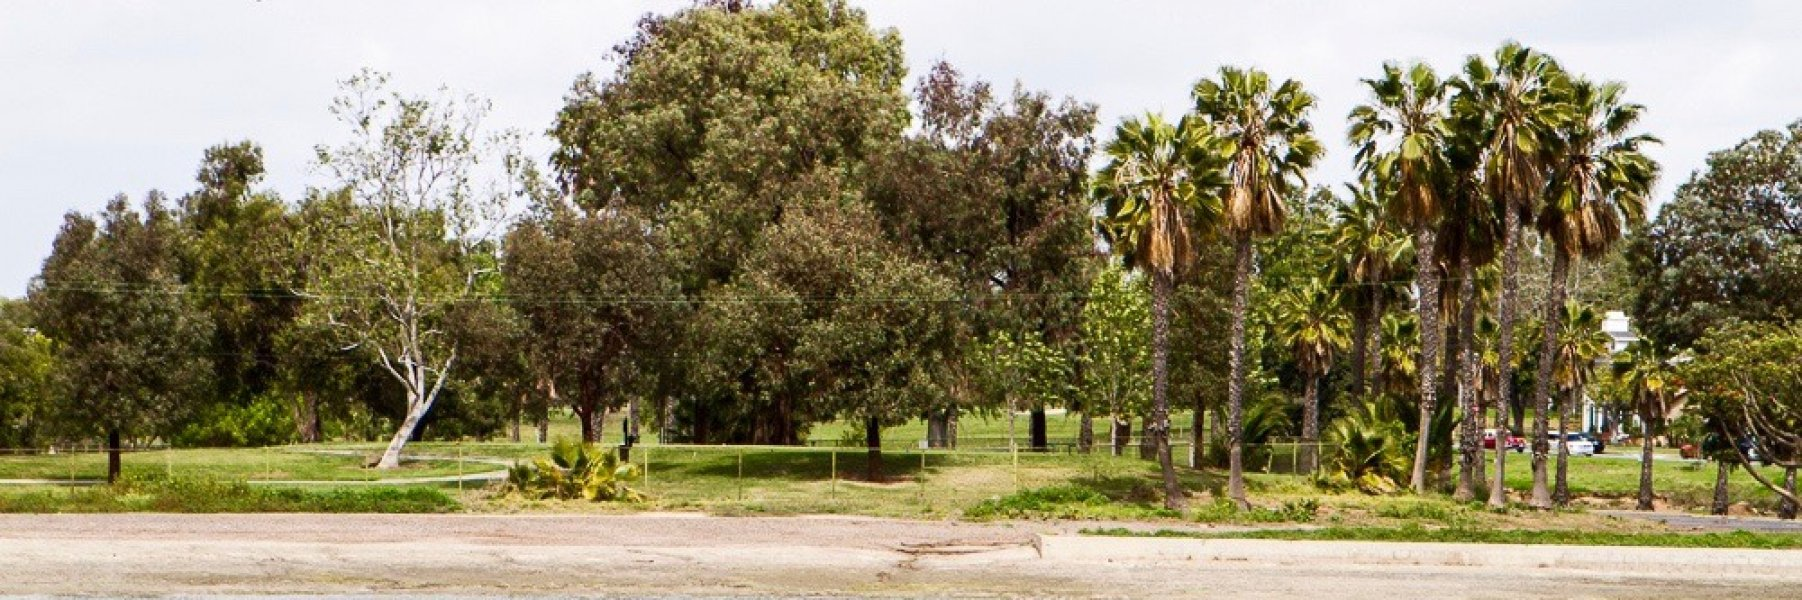 Alamitos Heights is a community of homes in Long Beach California